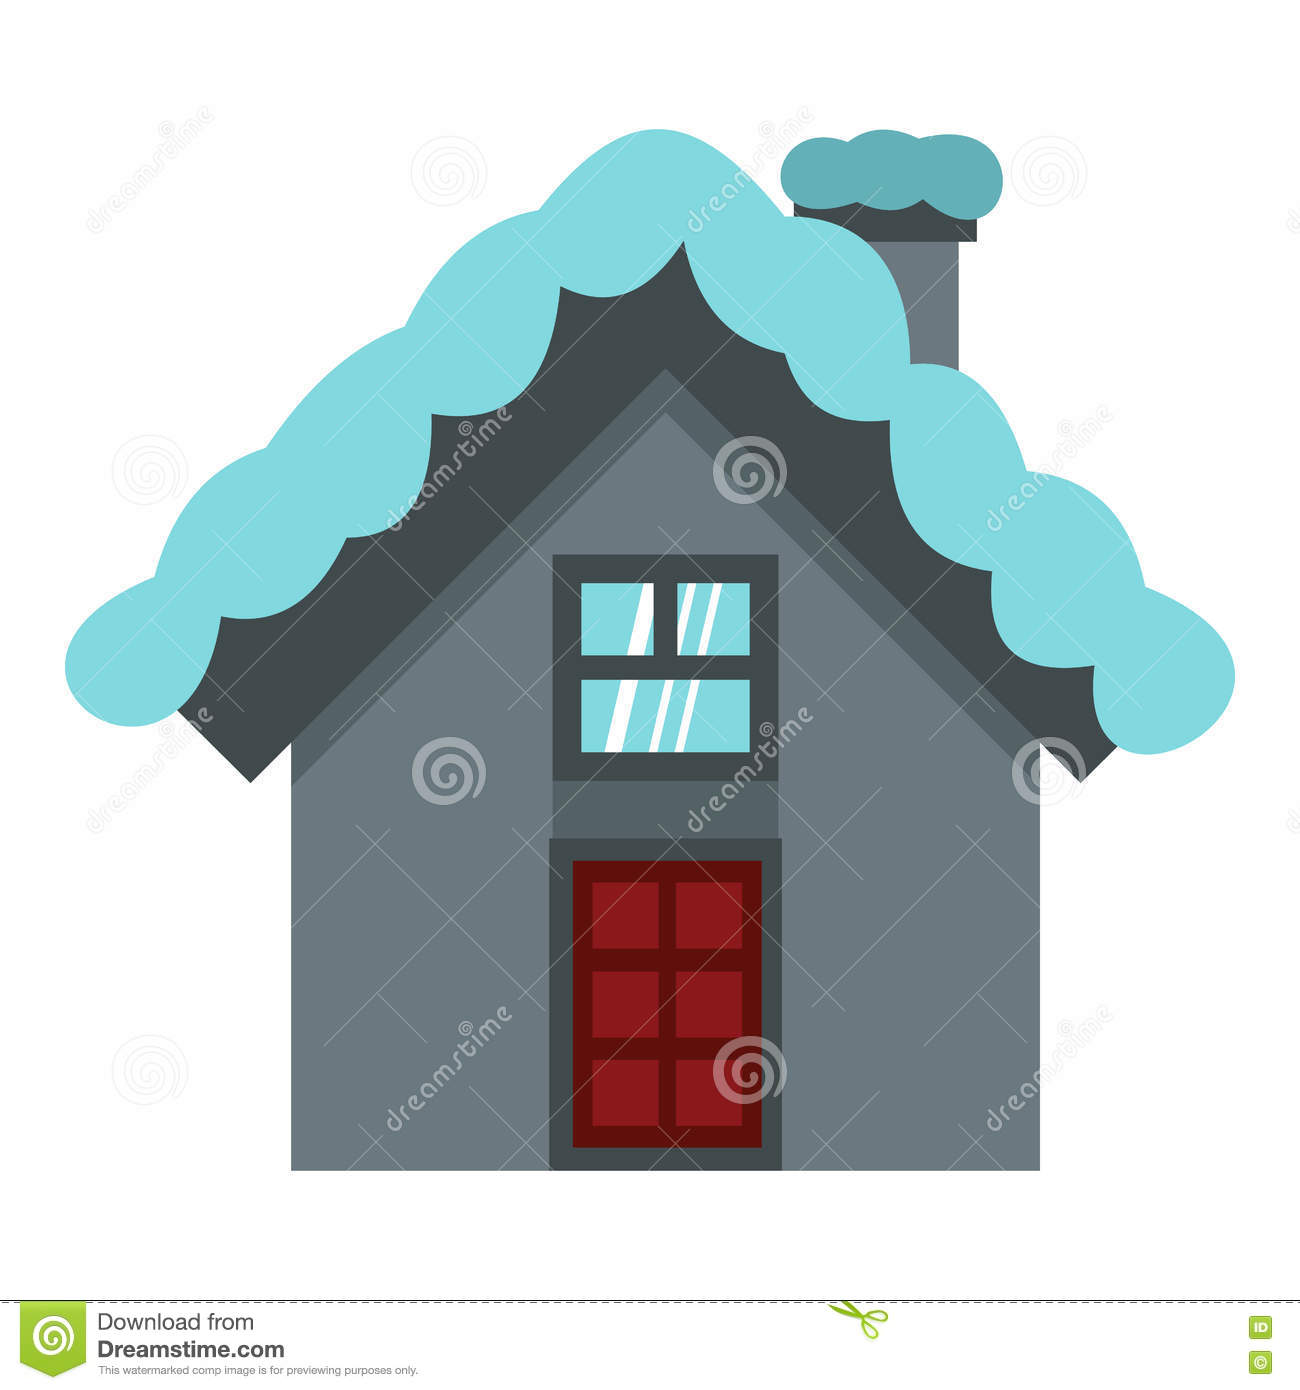 House with snow on roof icon flat style